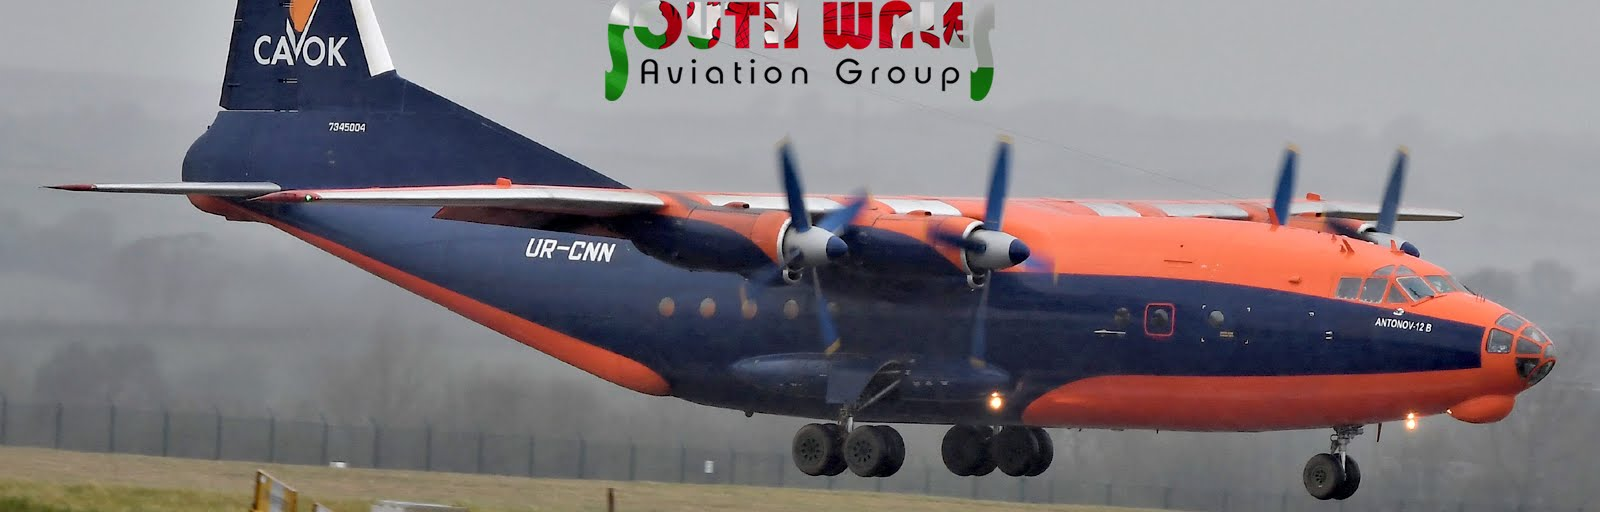 South Wales Aviation Group